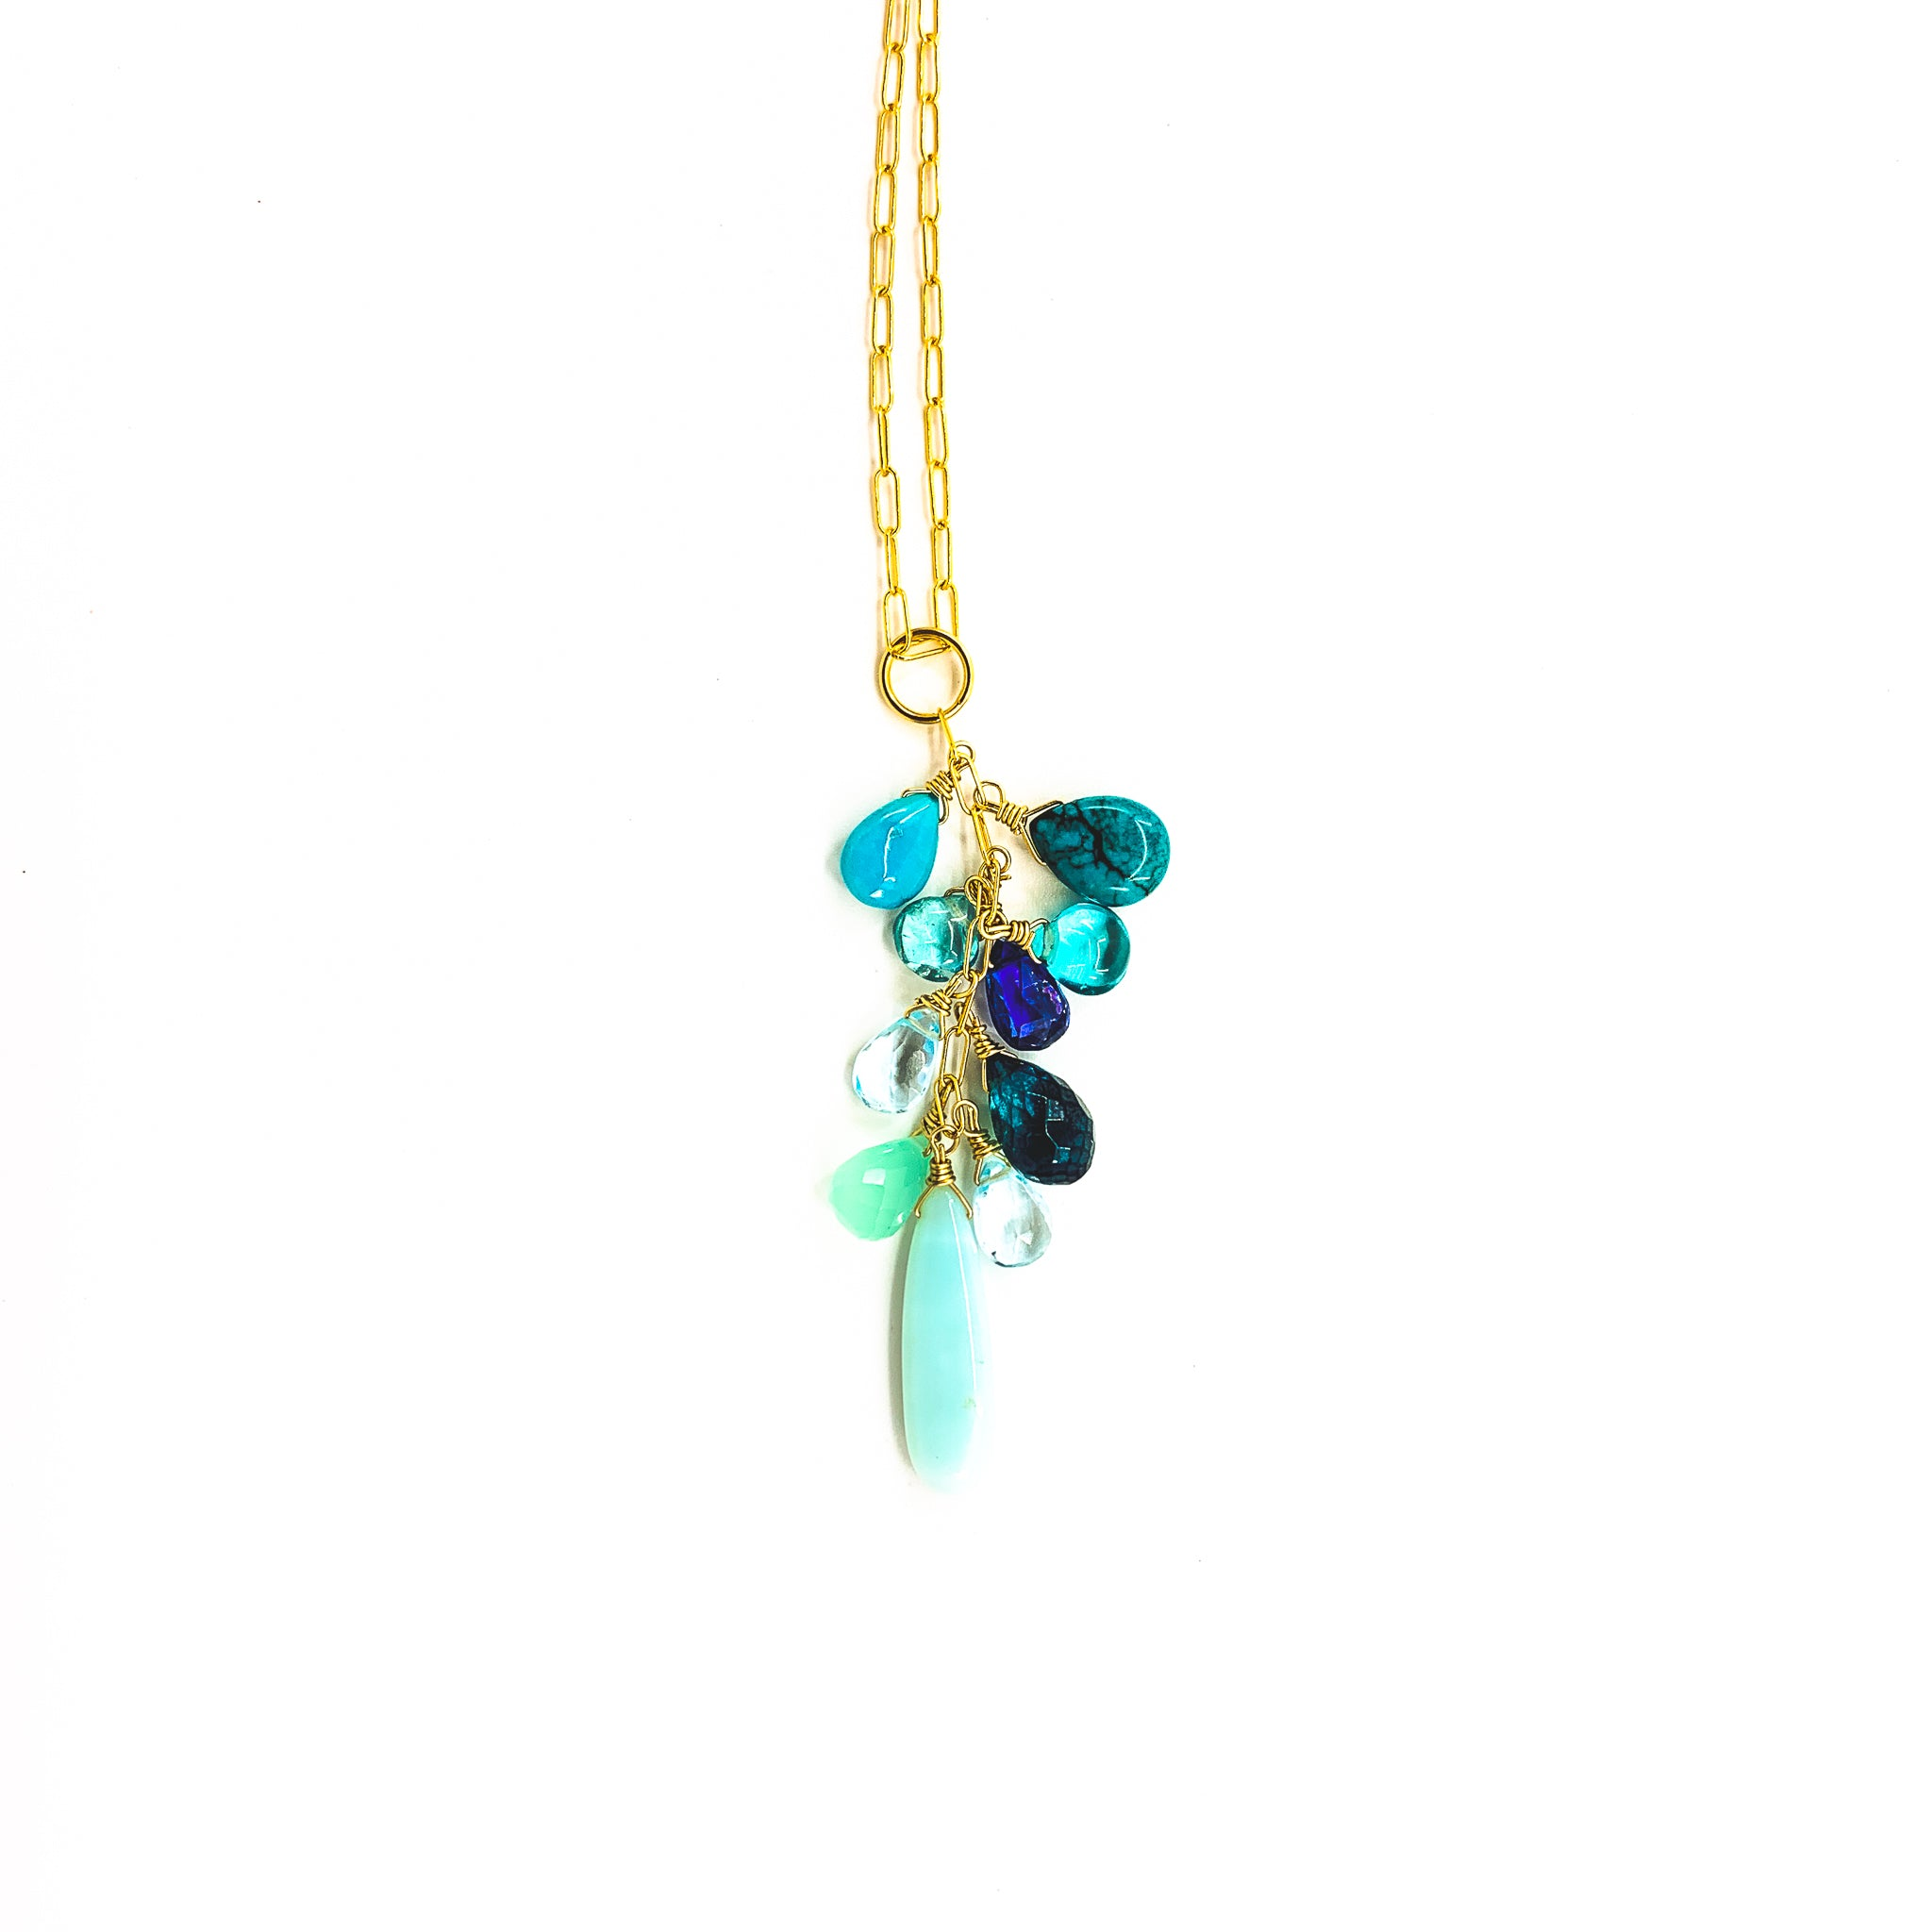 blue gemstones maui ocean necklace by eve black jewelry made in Hawaii  Edit alt text